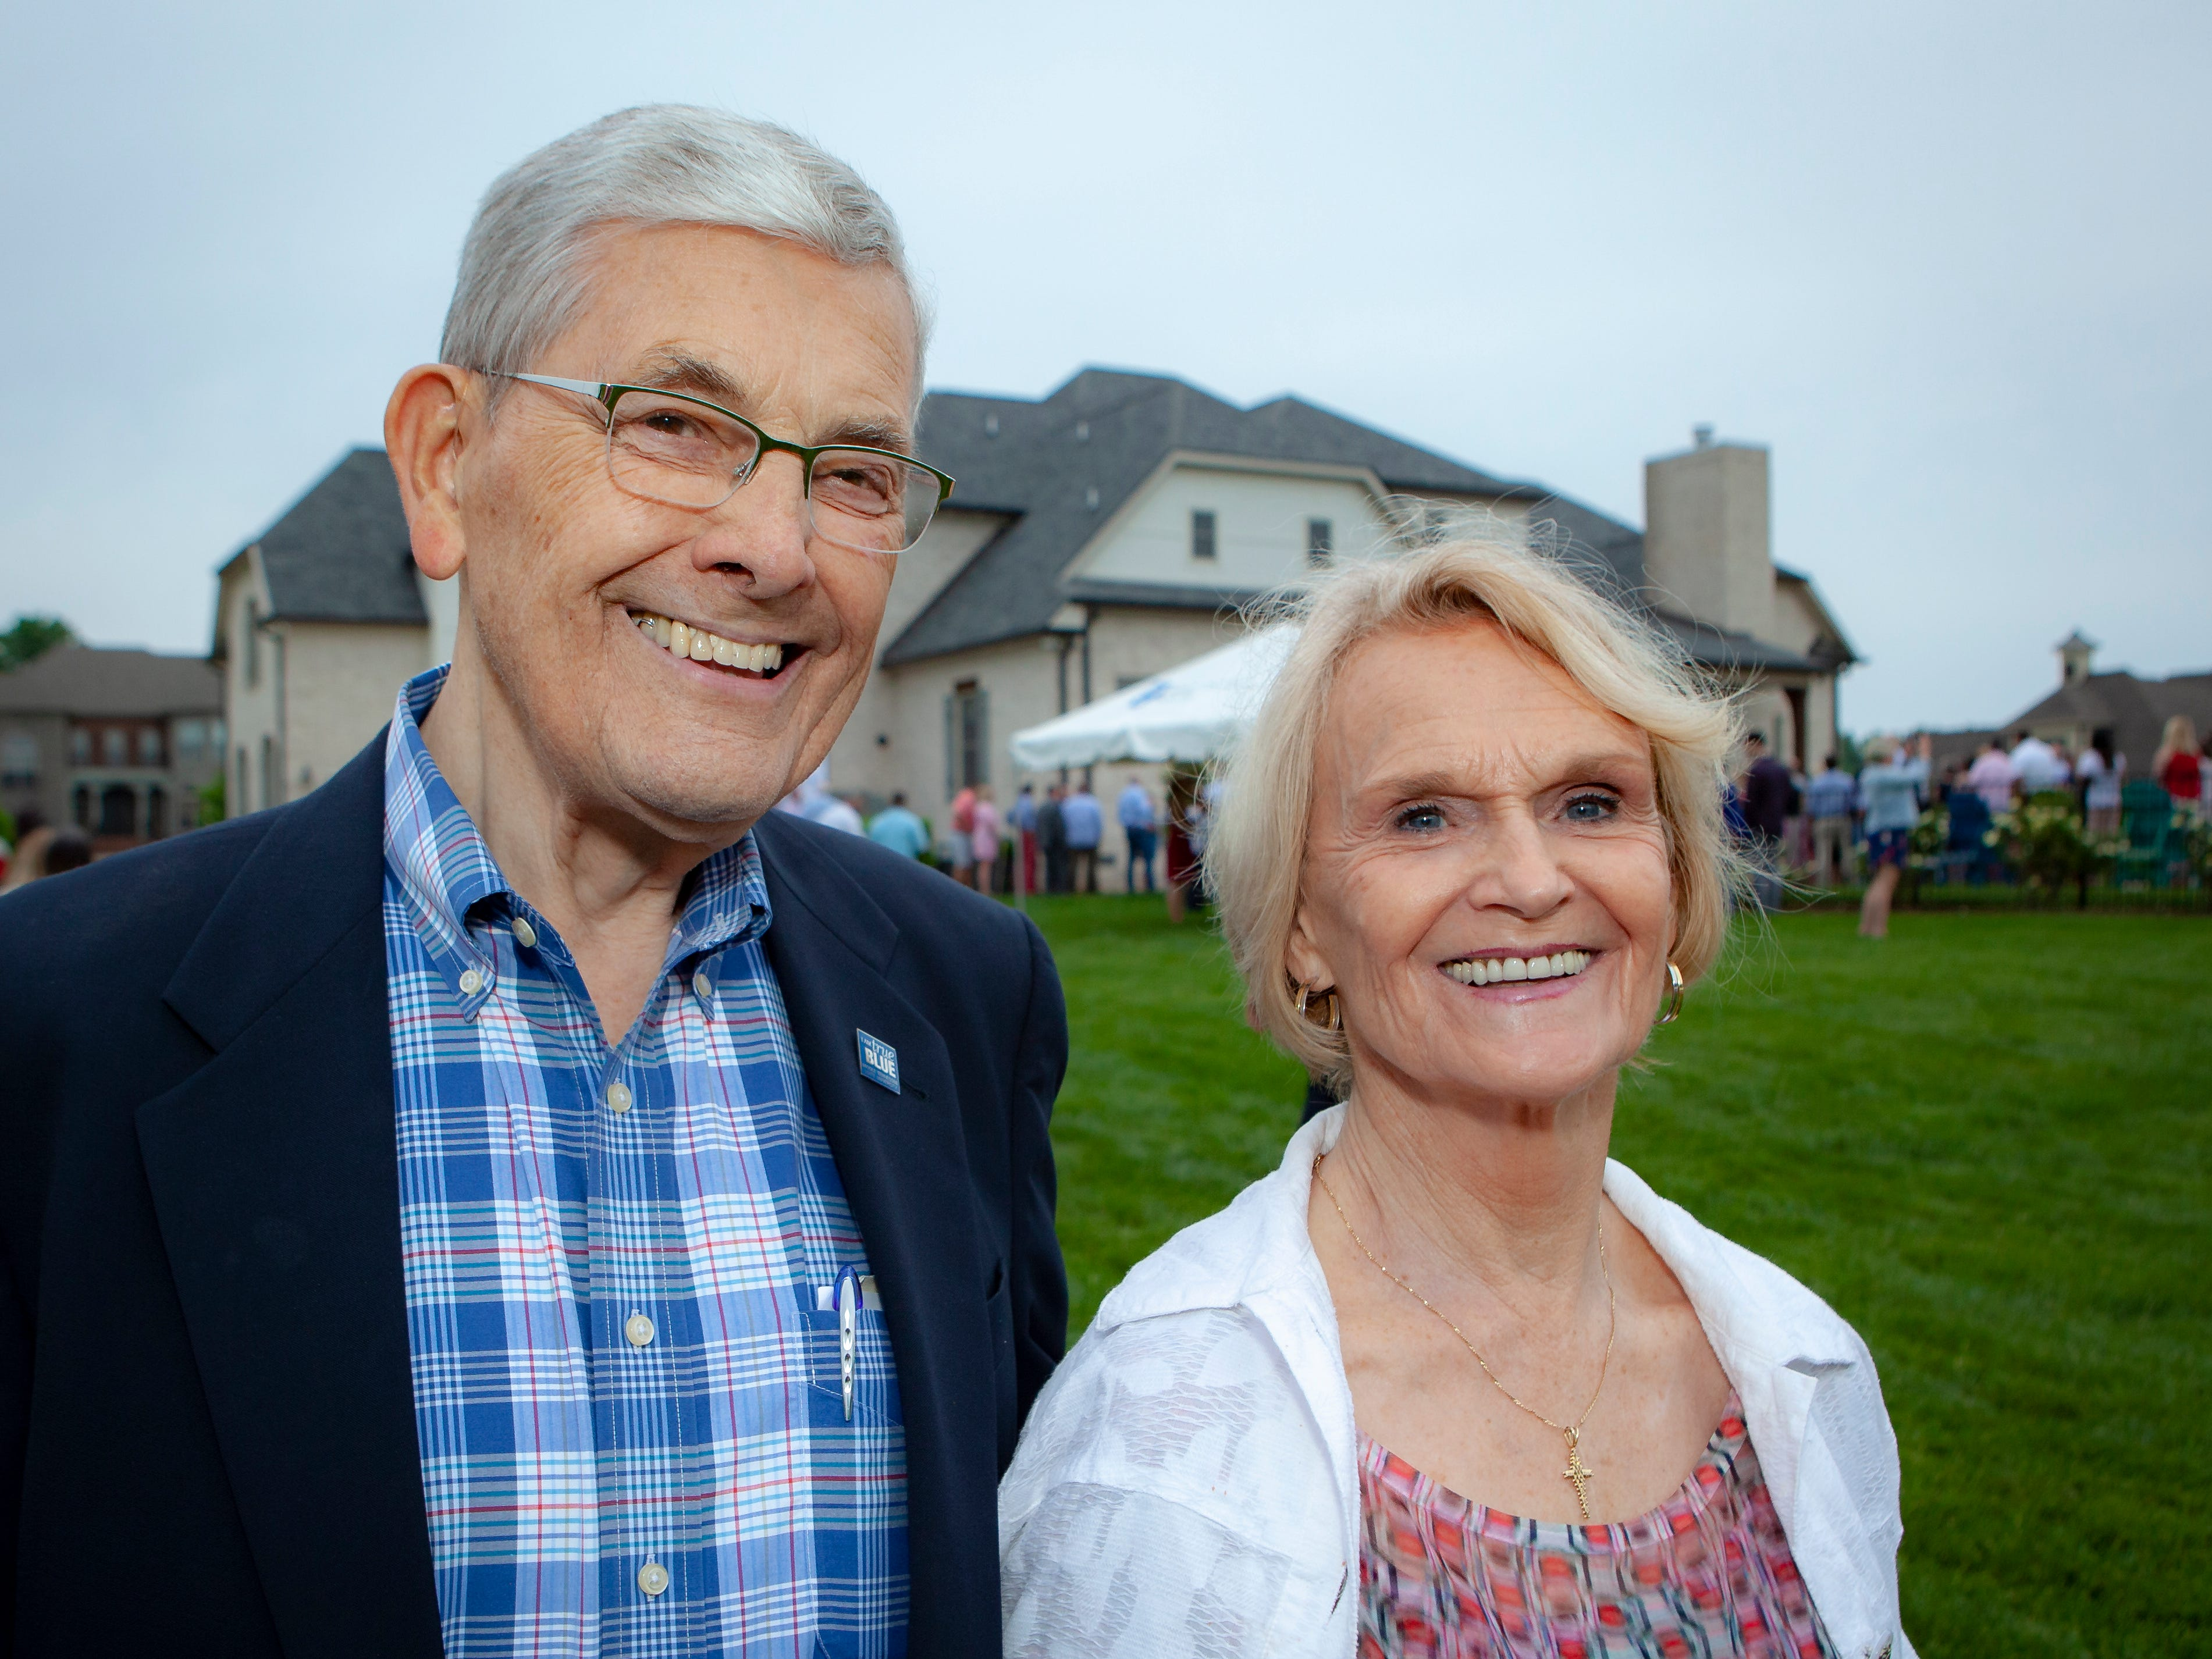 John Hood and Marie Wells enjoyed a Cajun feast under the stars at United Way's Red, White and Bayou, held Friday, May 10, 2019 at the home of Jimmy & Nikkole Aho.